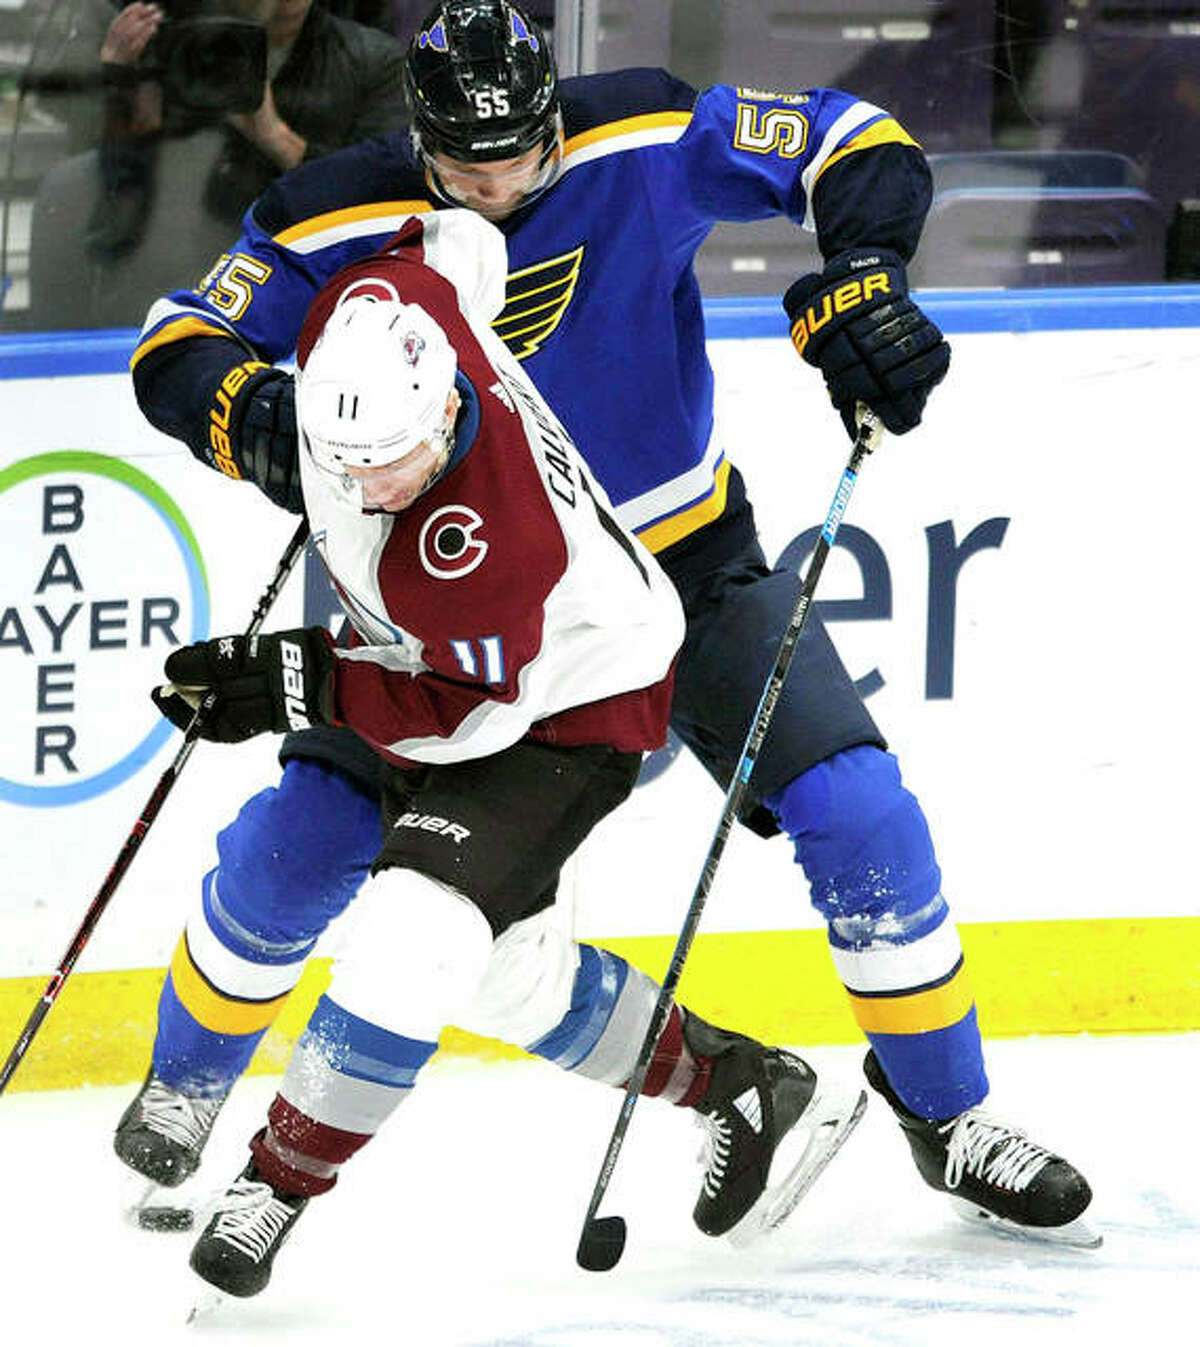 The Blues' Colton Parayko (55) battles for the puck with Colorado's Matt Calvert (11) in the second period of Monday night's game in St. Louis.